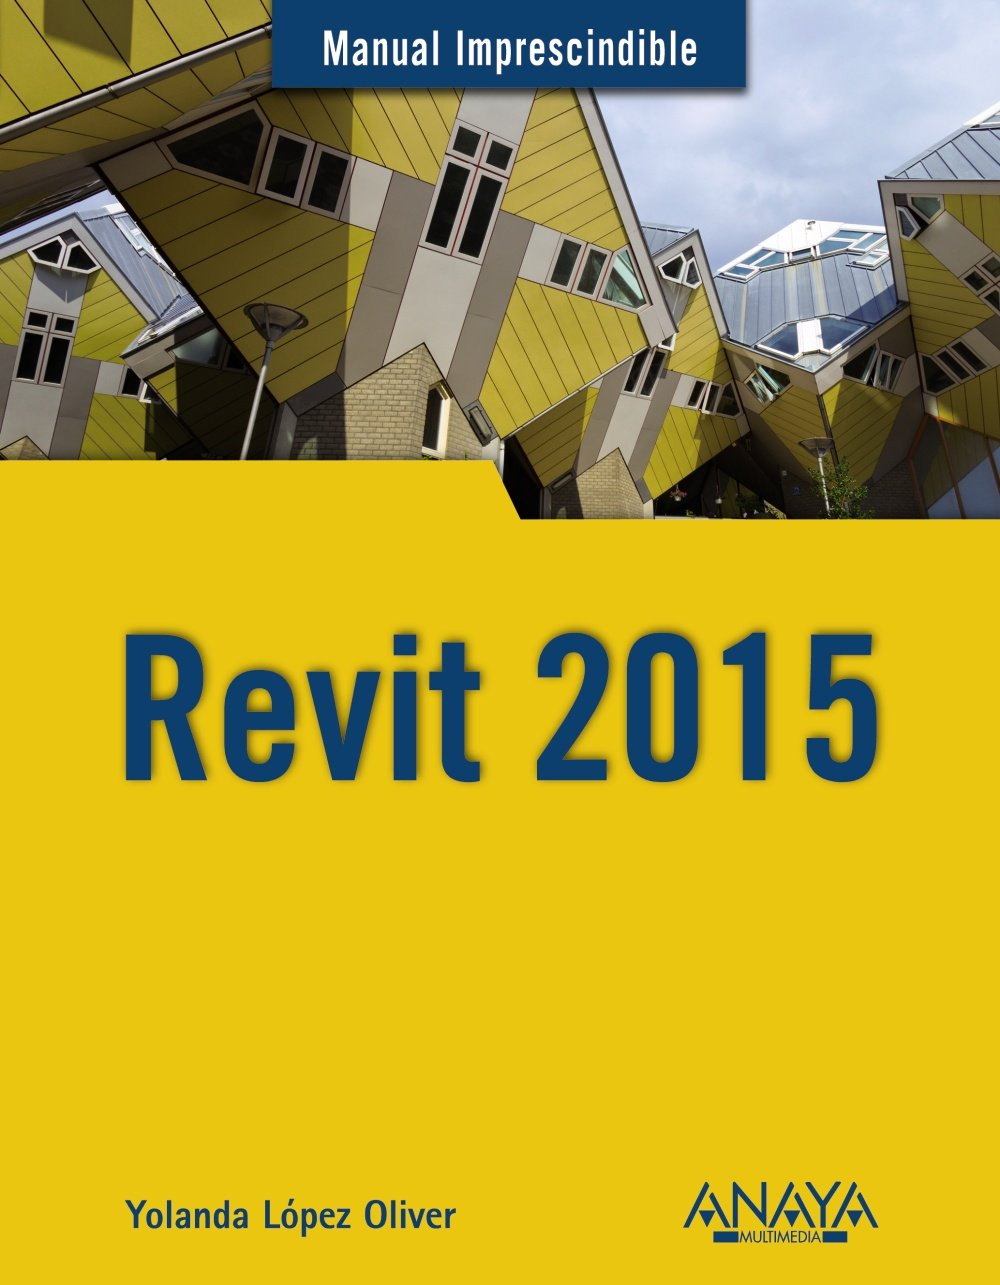 Revit 2015. Manual Imprescindible